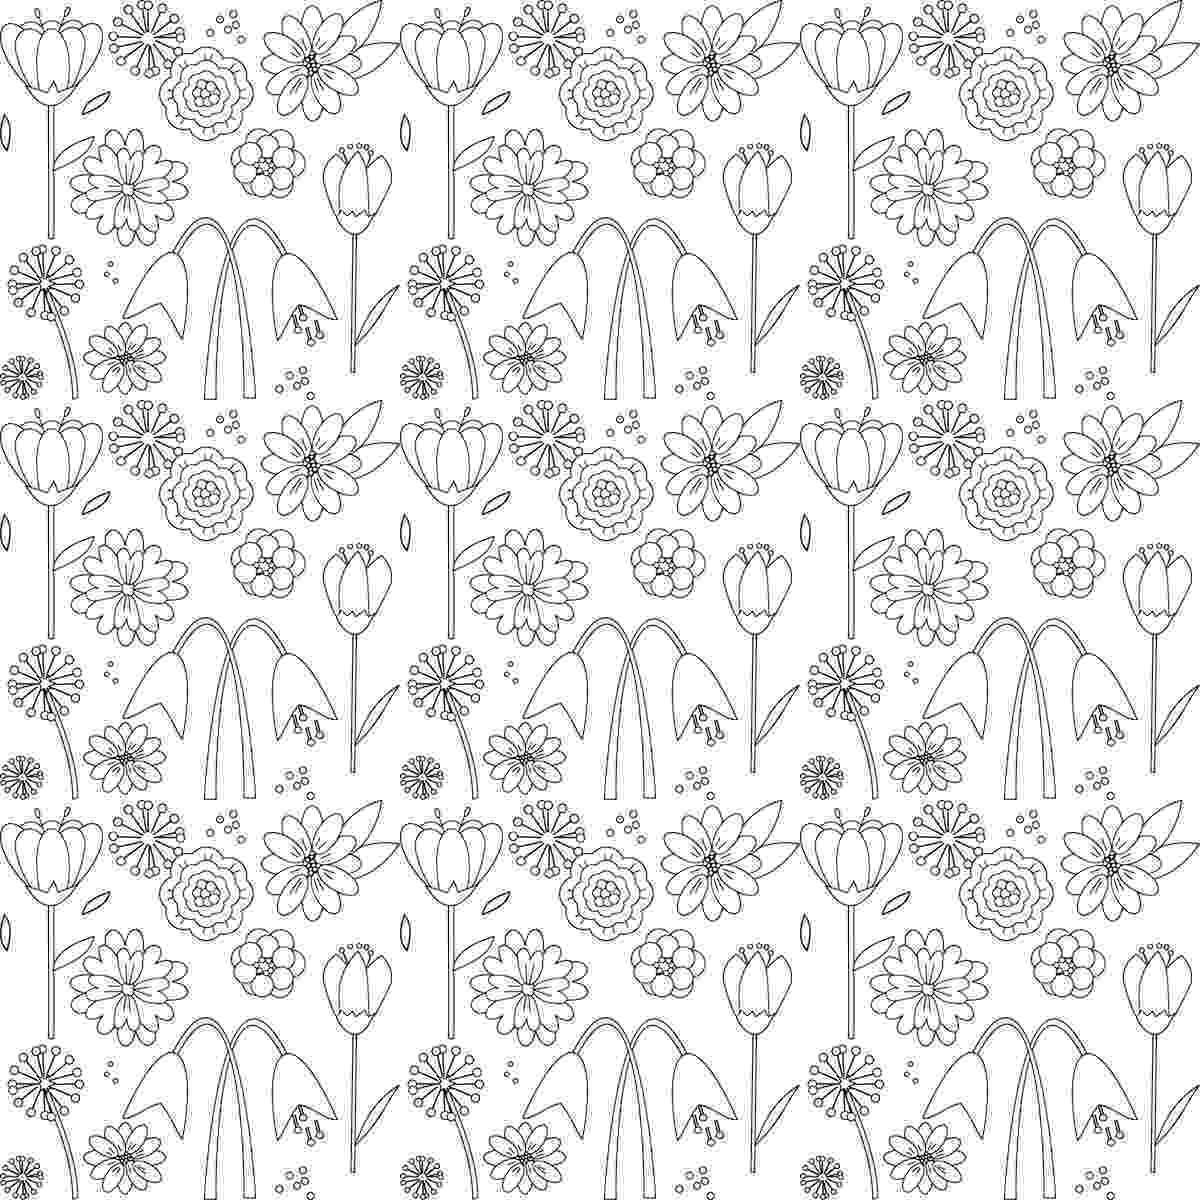 printable flower patterns to color flower page printable coloring sheets pages tender flower to printable patterns color